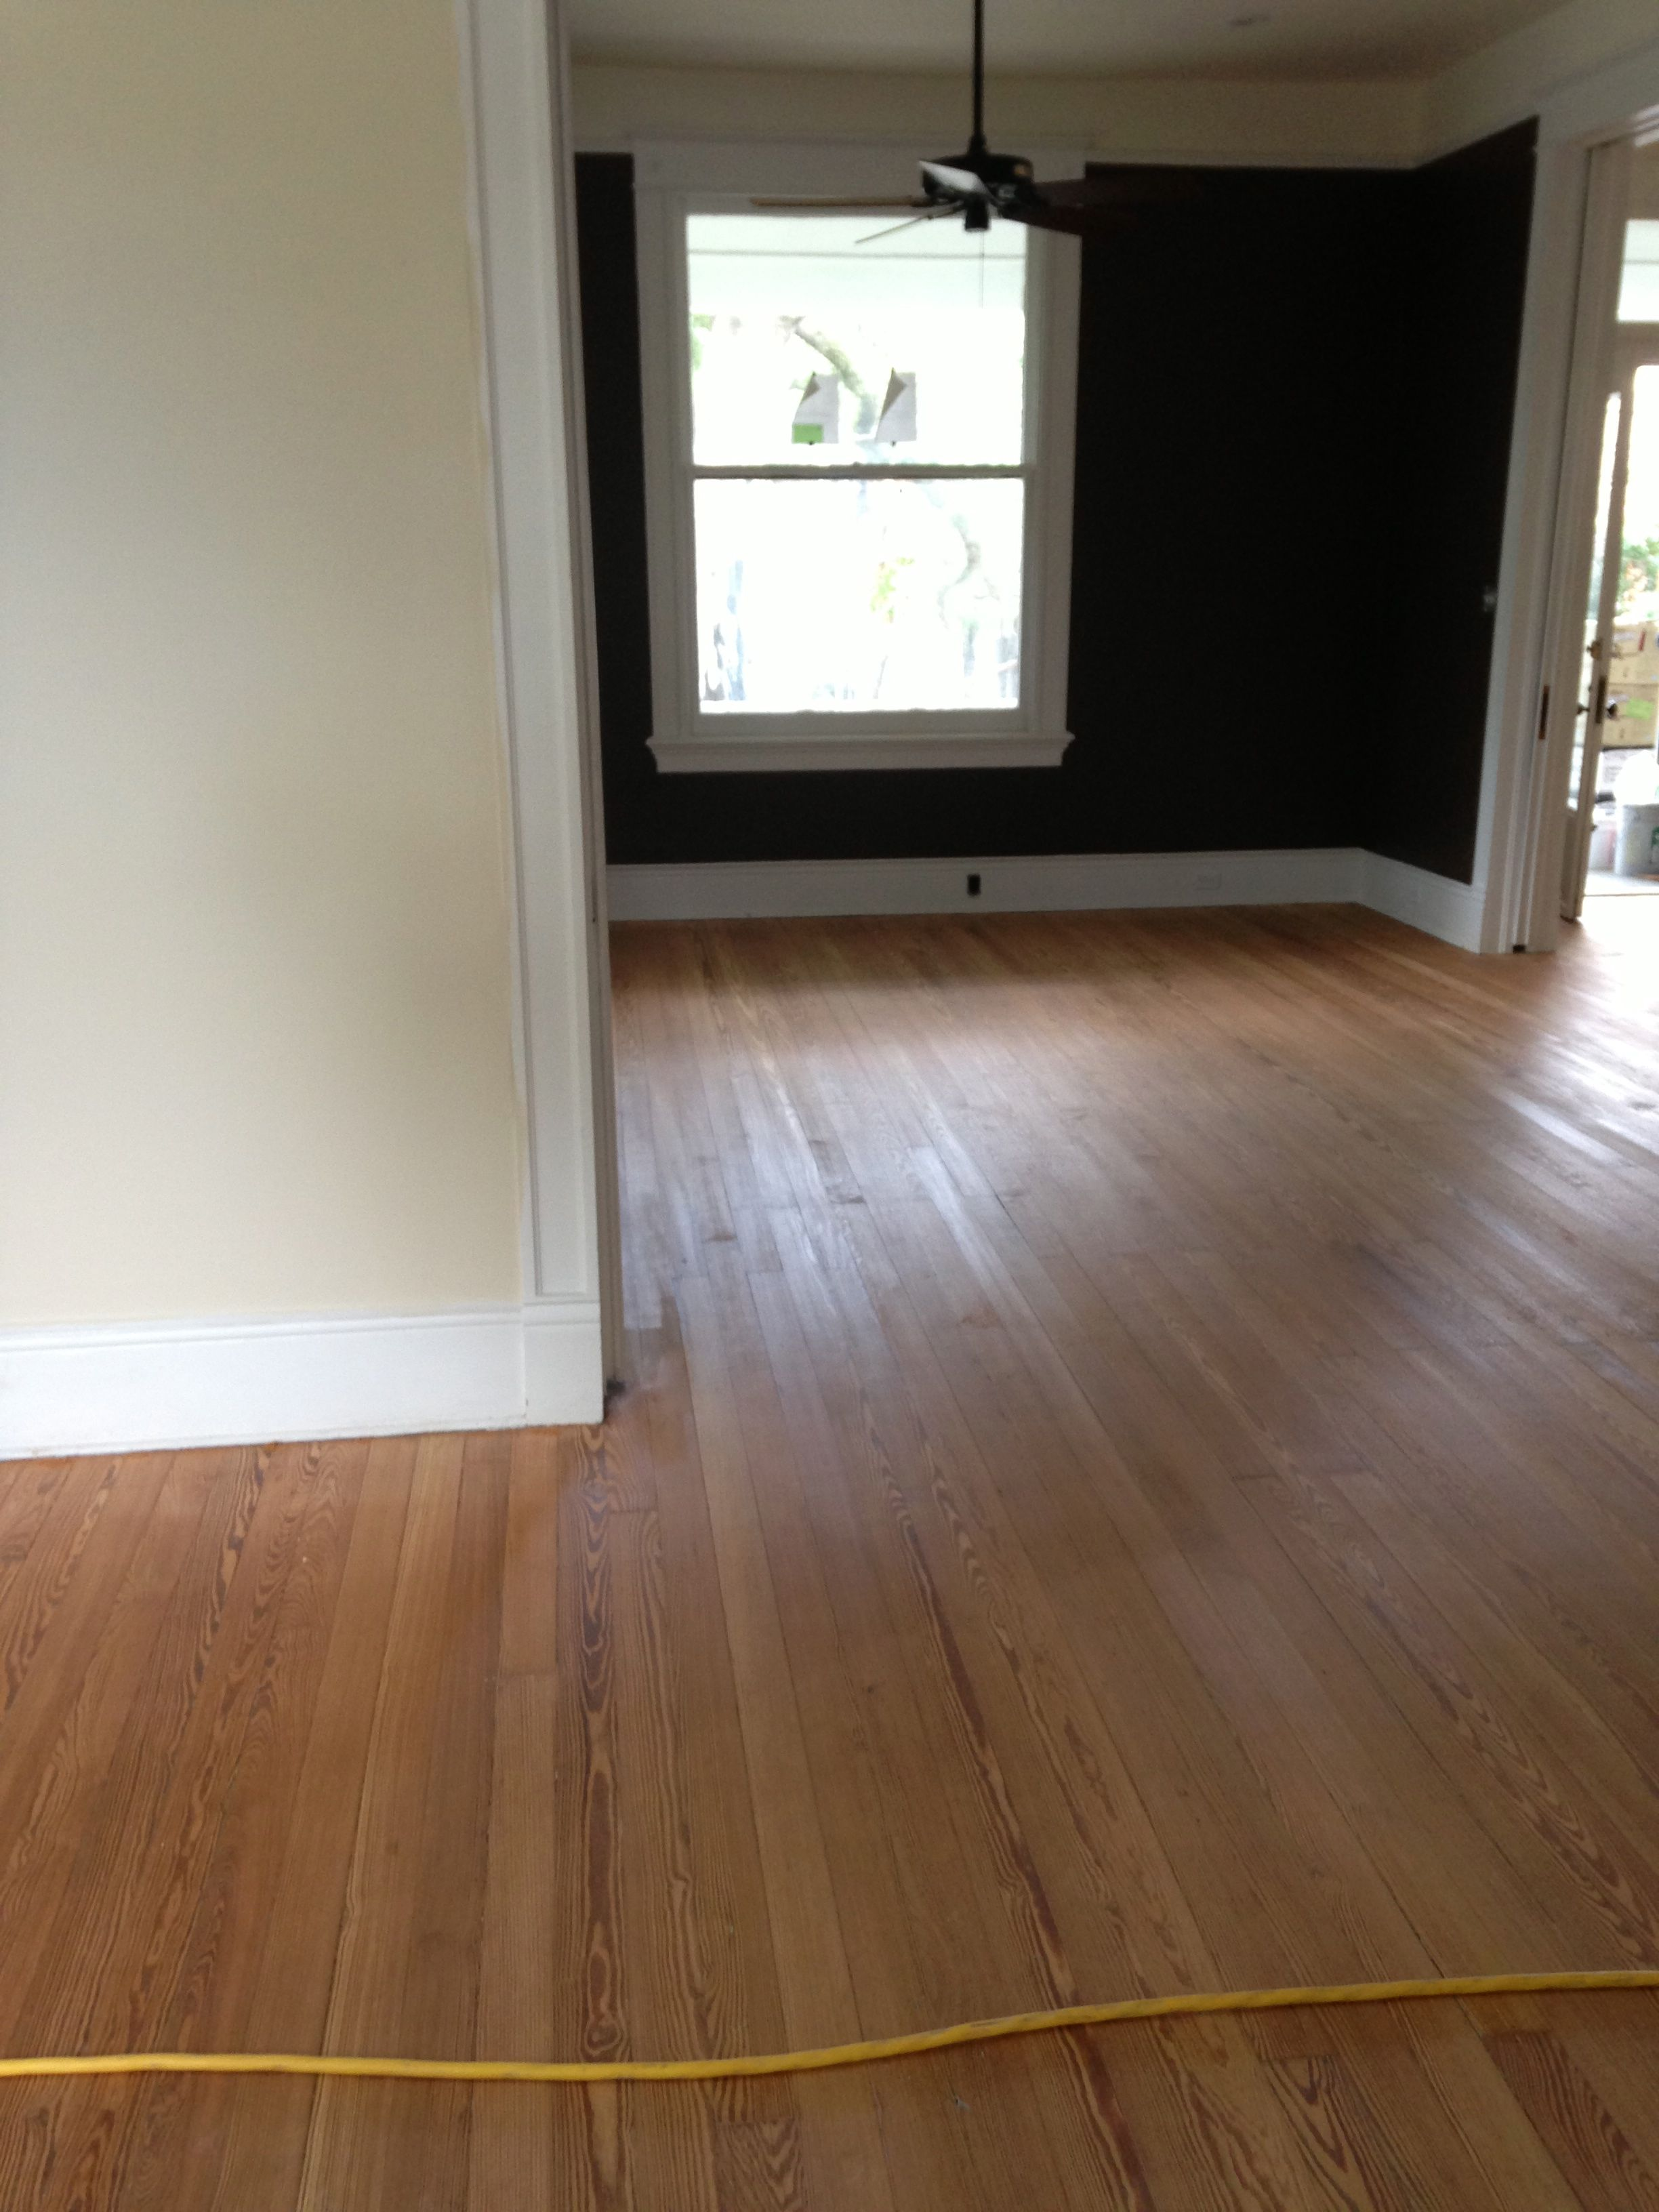 Sanded and cleaned hardwood floors